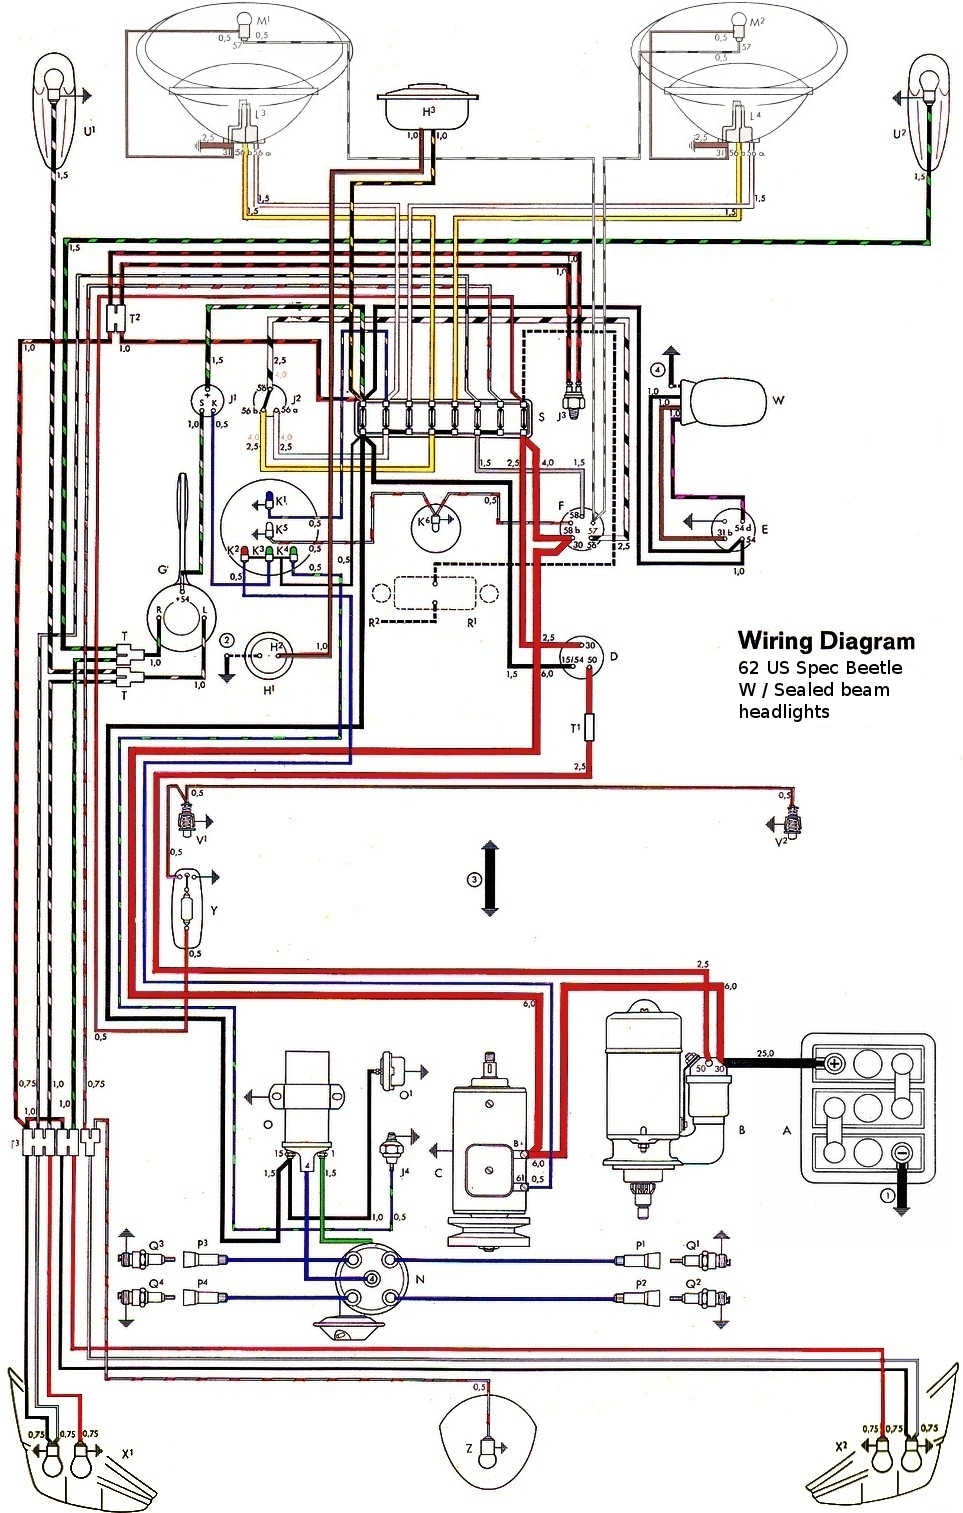 TheSamba.com :: Type 1 Wiring Diagrams | 74 Vw Bus Wiring Diagram Relays |  | TheSamba.com